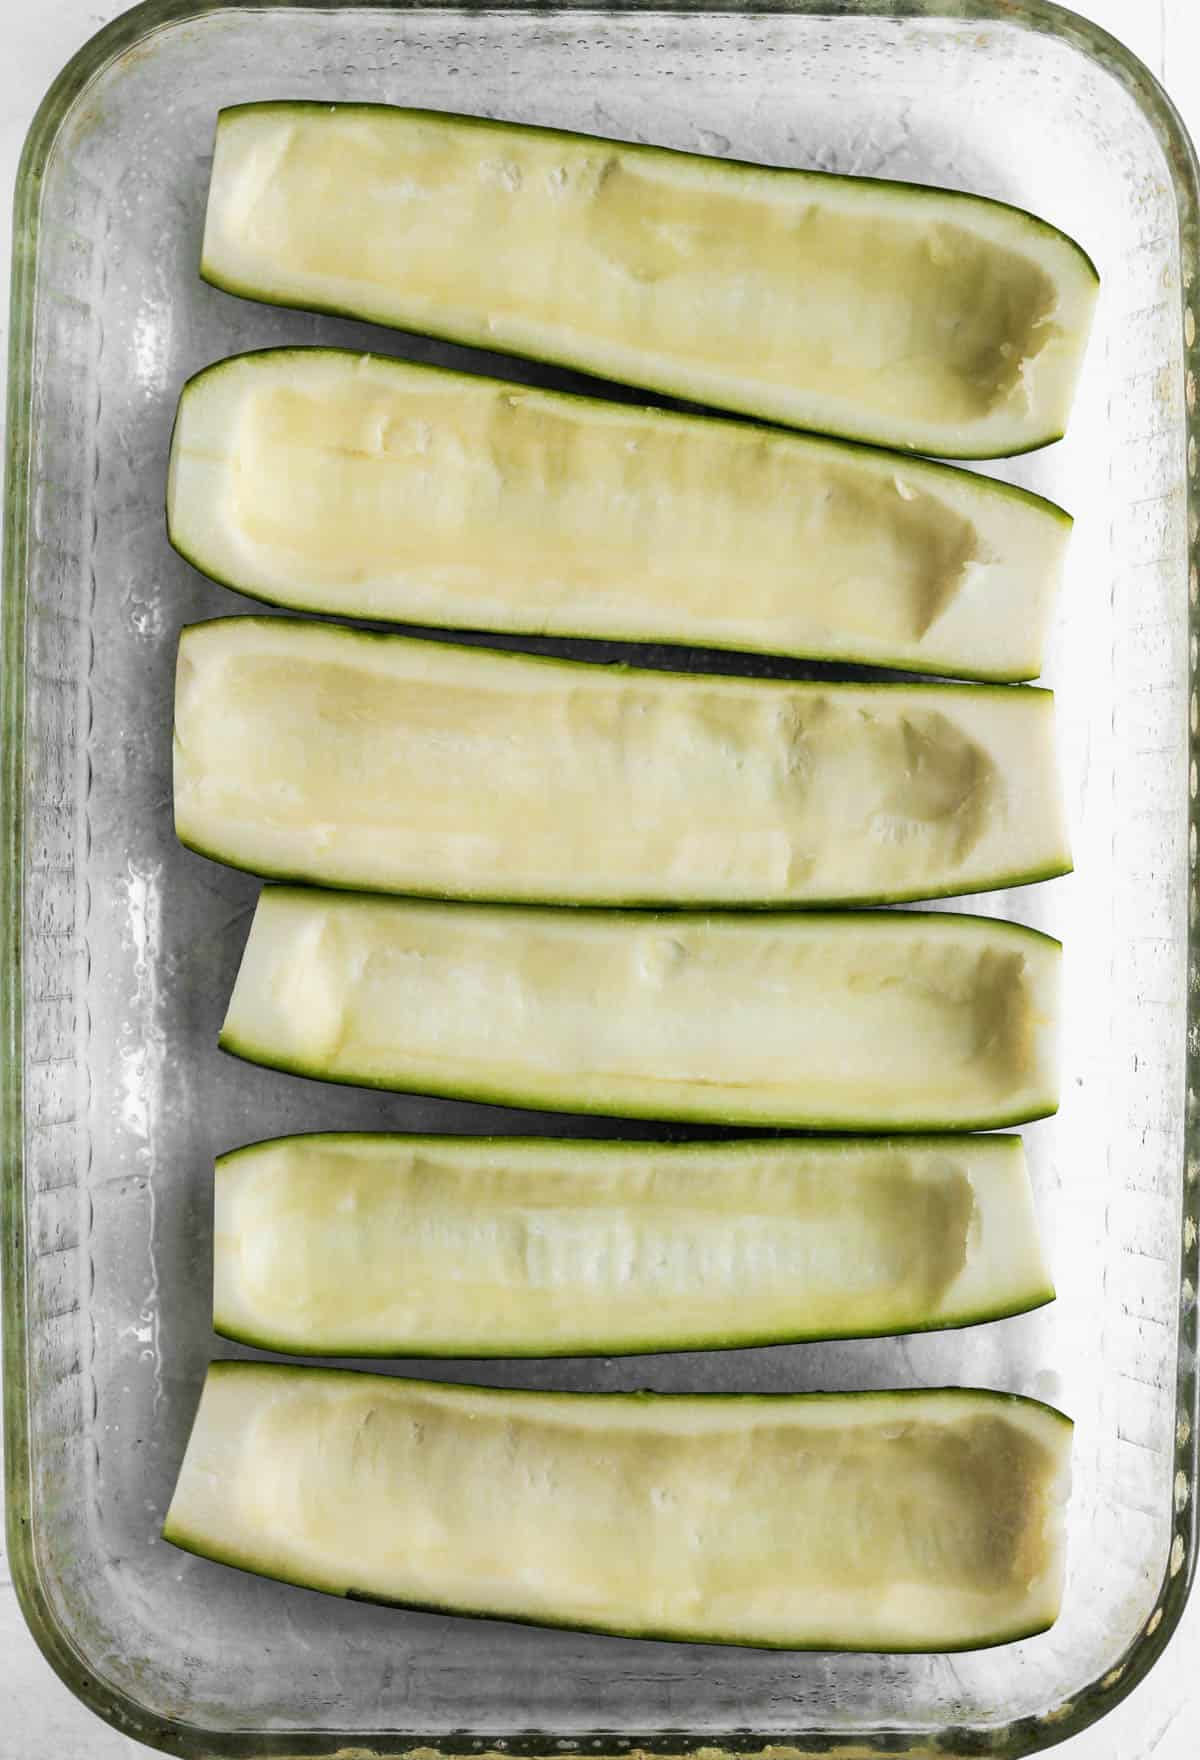 6 hollowed out zucchini halves in a glass baking dish.